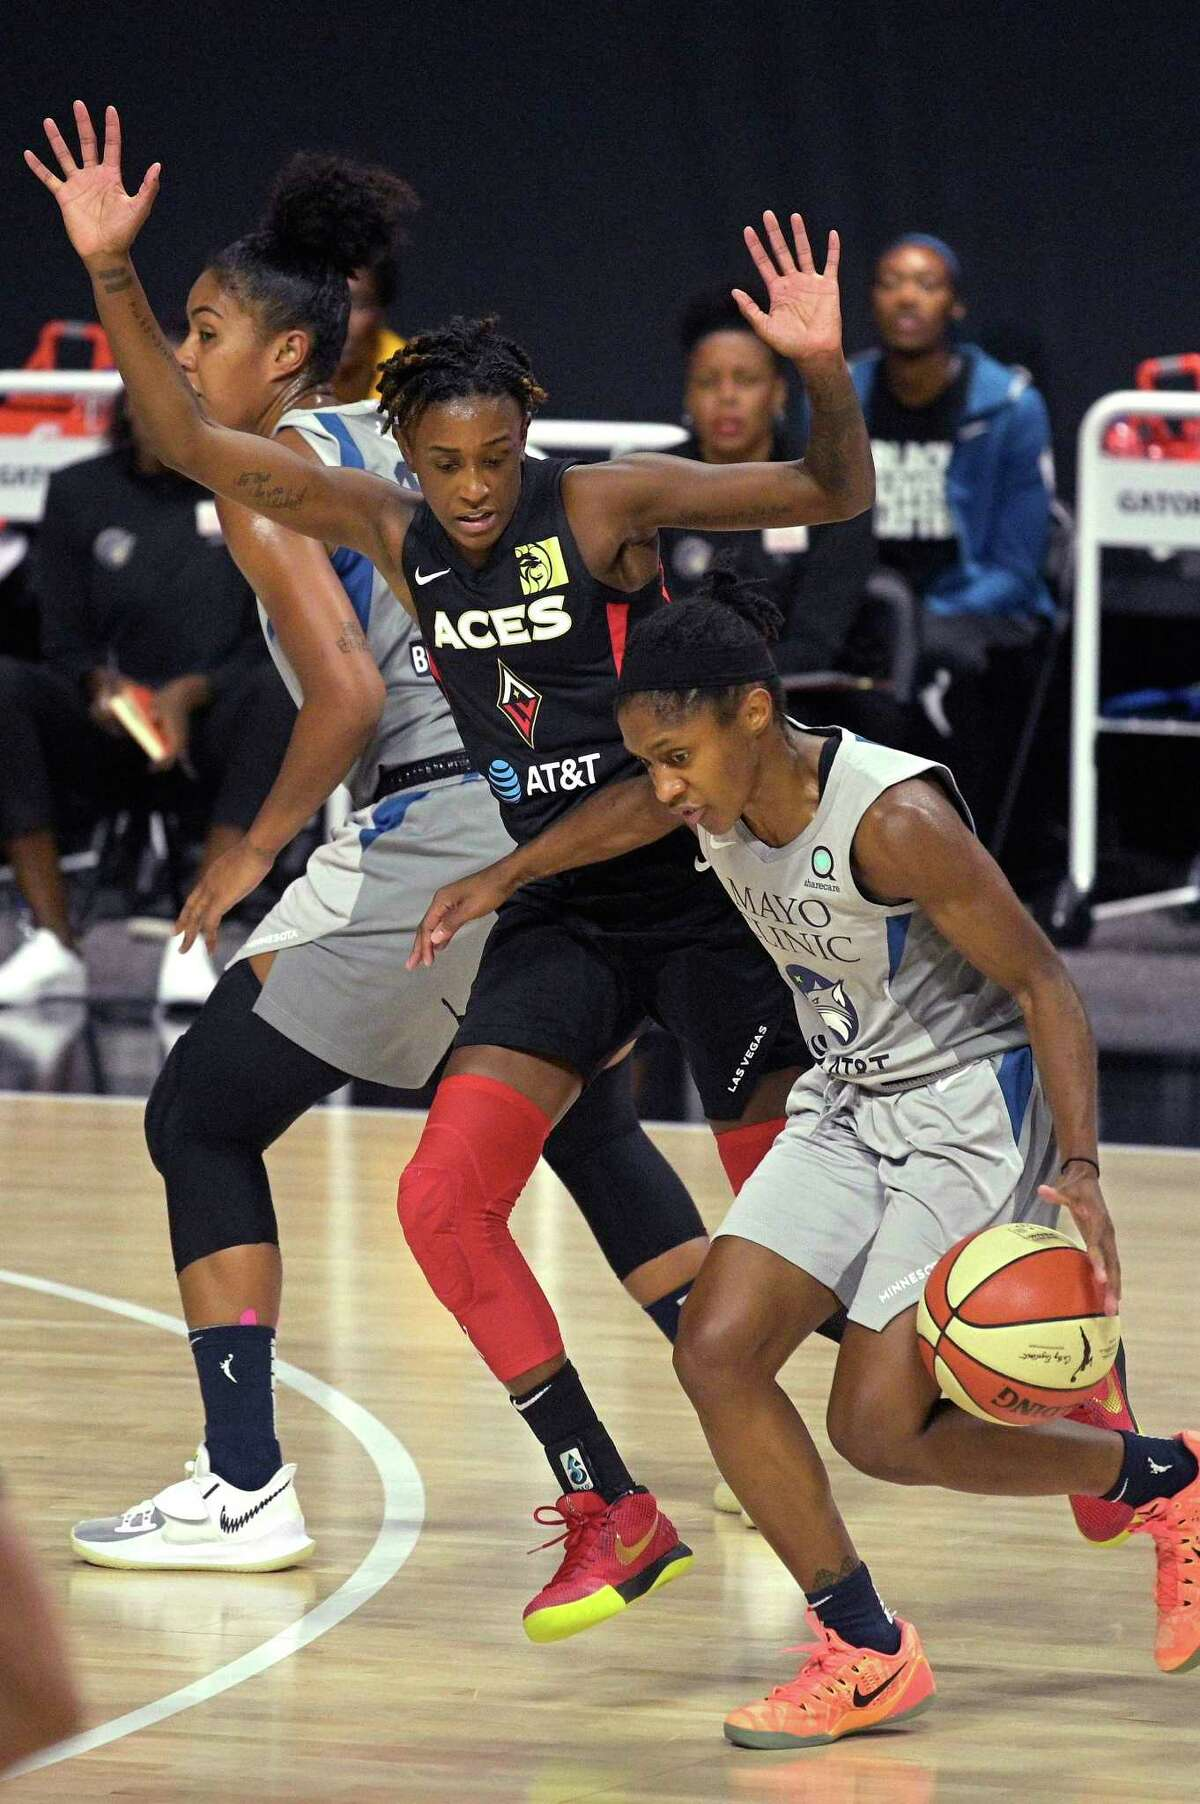 Minnesota Lynx guard Crystal Dangerfield, right, is fouled by Las Vegas Aces guard Danielle Robinson while driving to the basket during the first half of a WNBA basketball game Thursday, Sept. 10, 2020, in Bradenton, Fla.